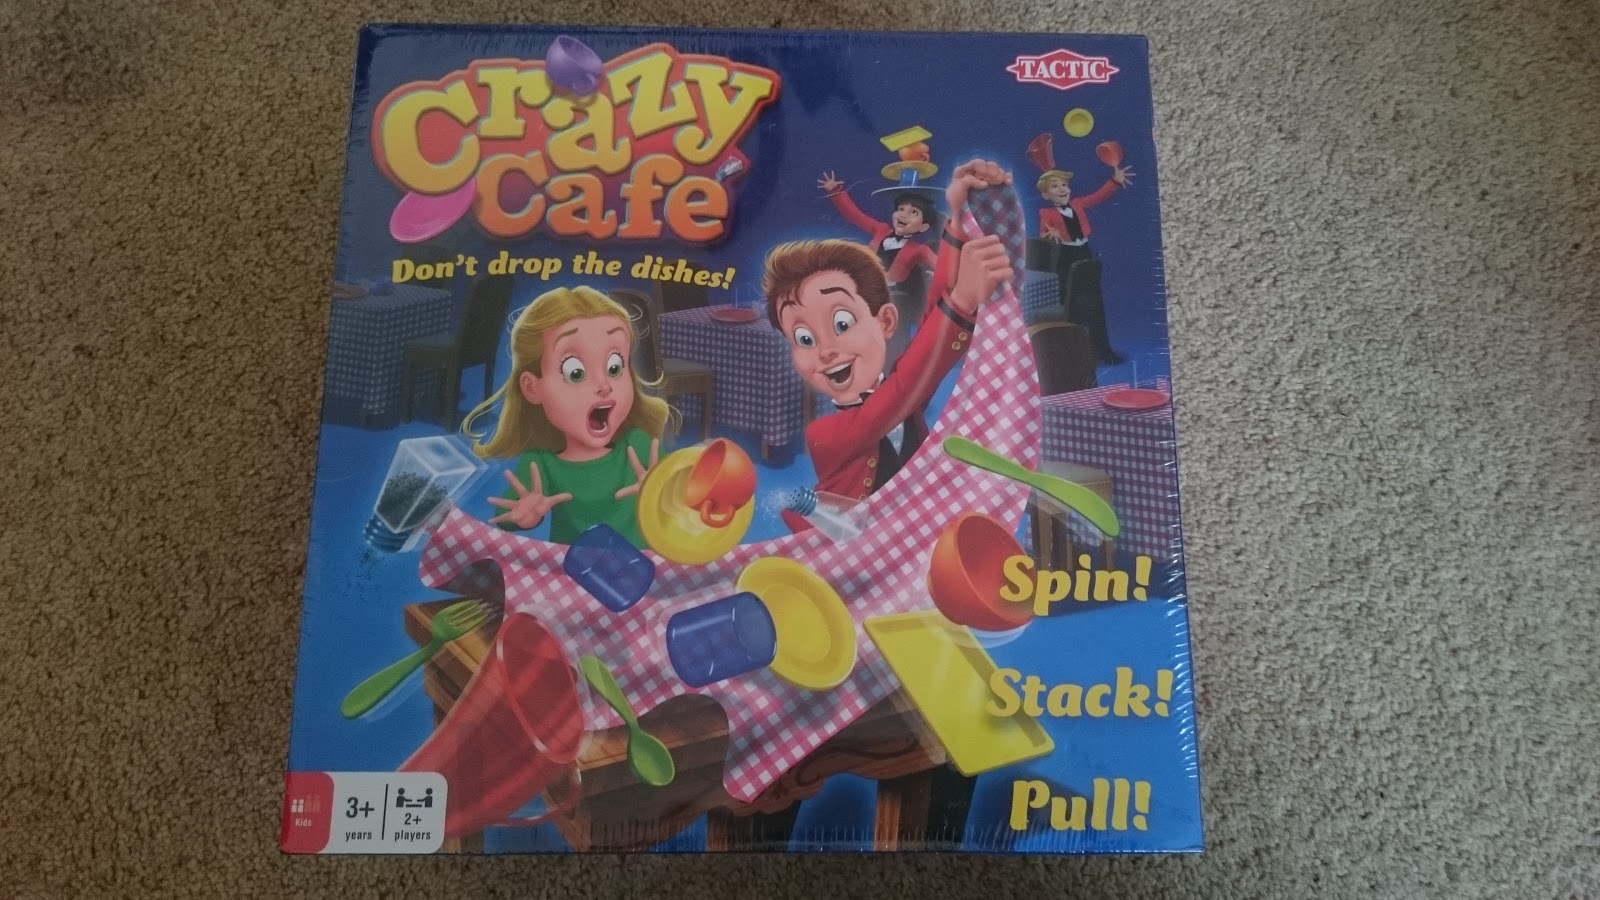 Rennas discoveries crazy cafe for kids tactic games now because i cook a lot and myself and my daughter watch most of the baking and cooking programmes i thought this game would be perfect for us solutioingenieria Choice Image